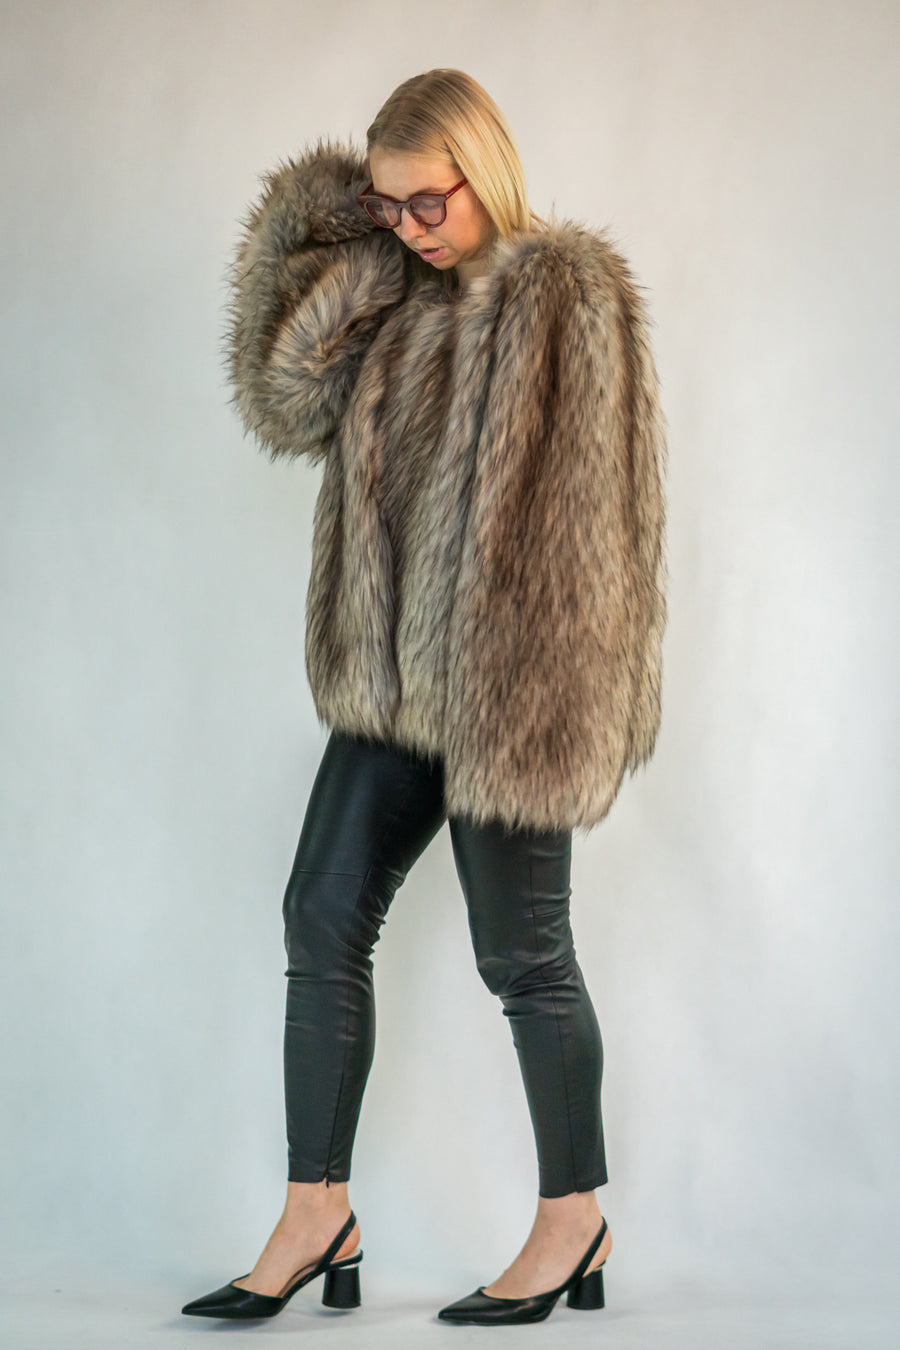 Luxury faux coyote fur coat - LOOKHUNTER